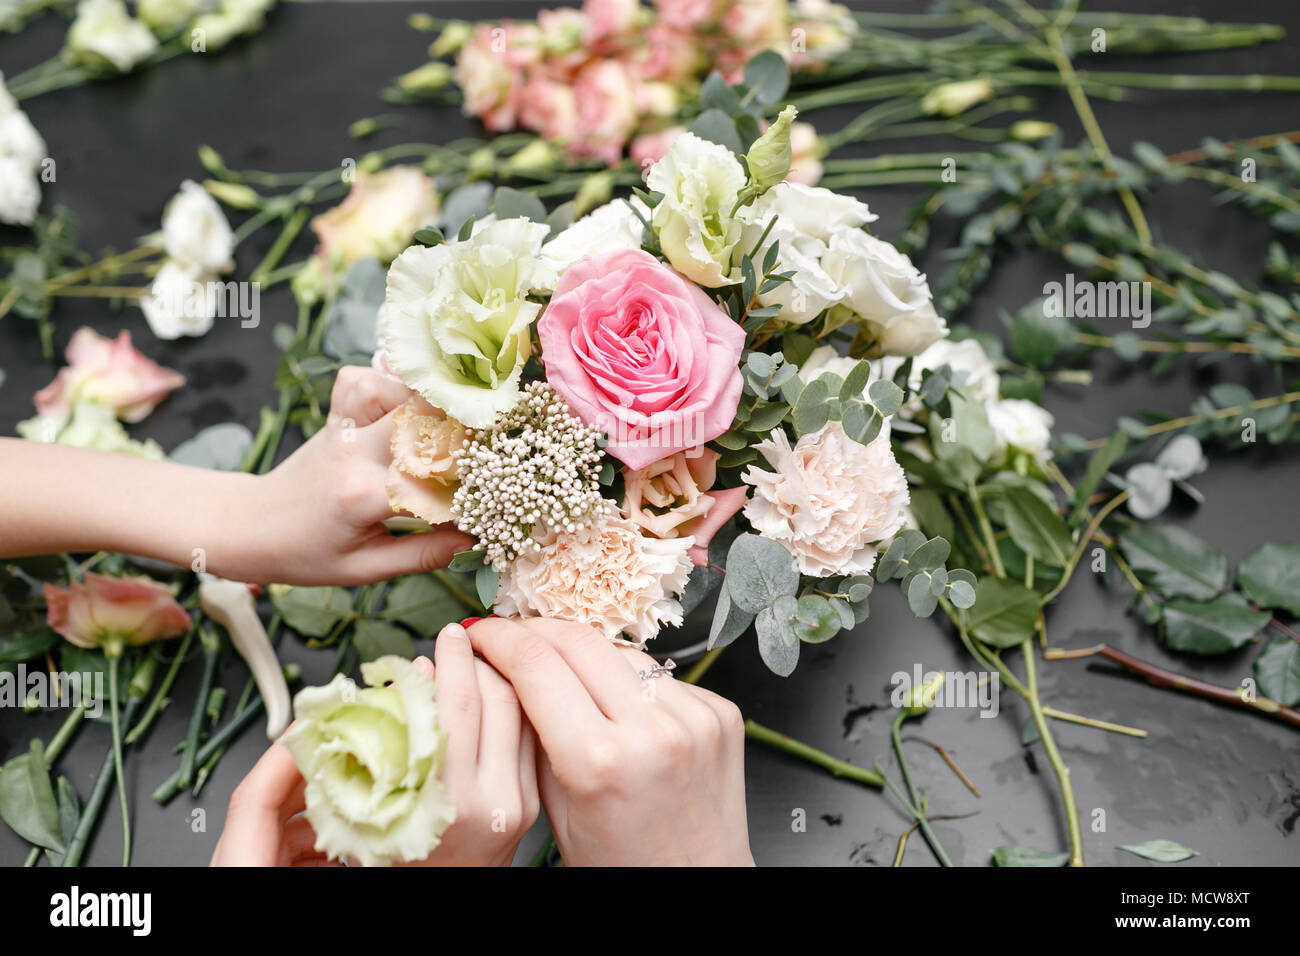 Master class on making bouquets for kids. Spring bouquet in metal ornamental flowerpot. Learning flower arranging, making beautiful bouquets with your own hands Stock Photo